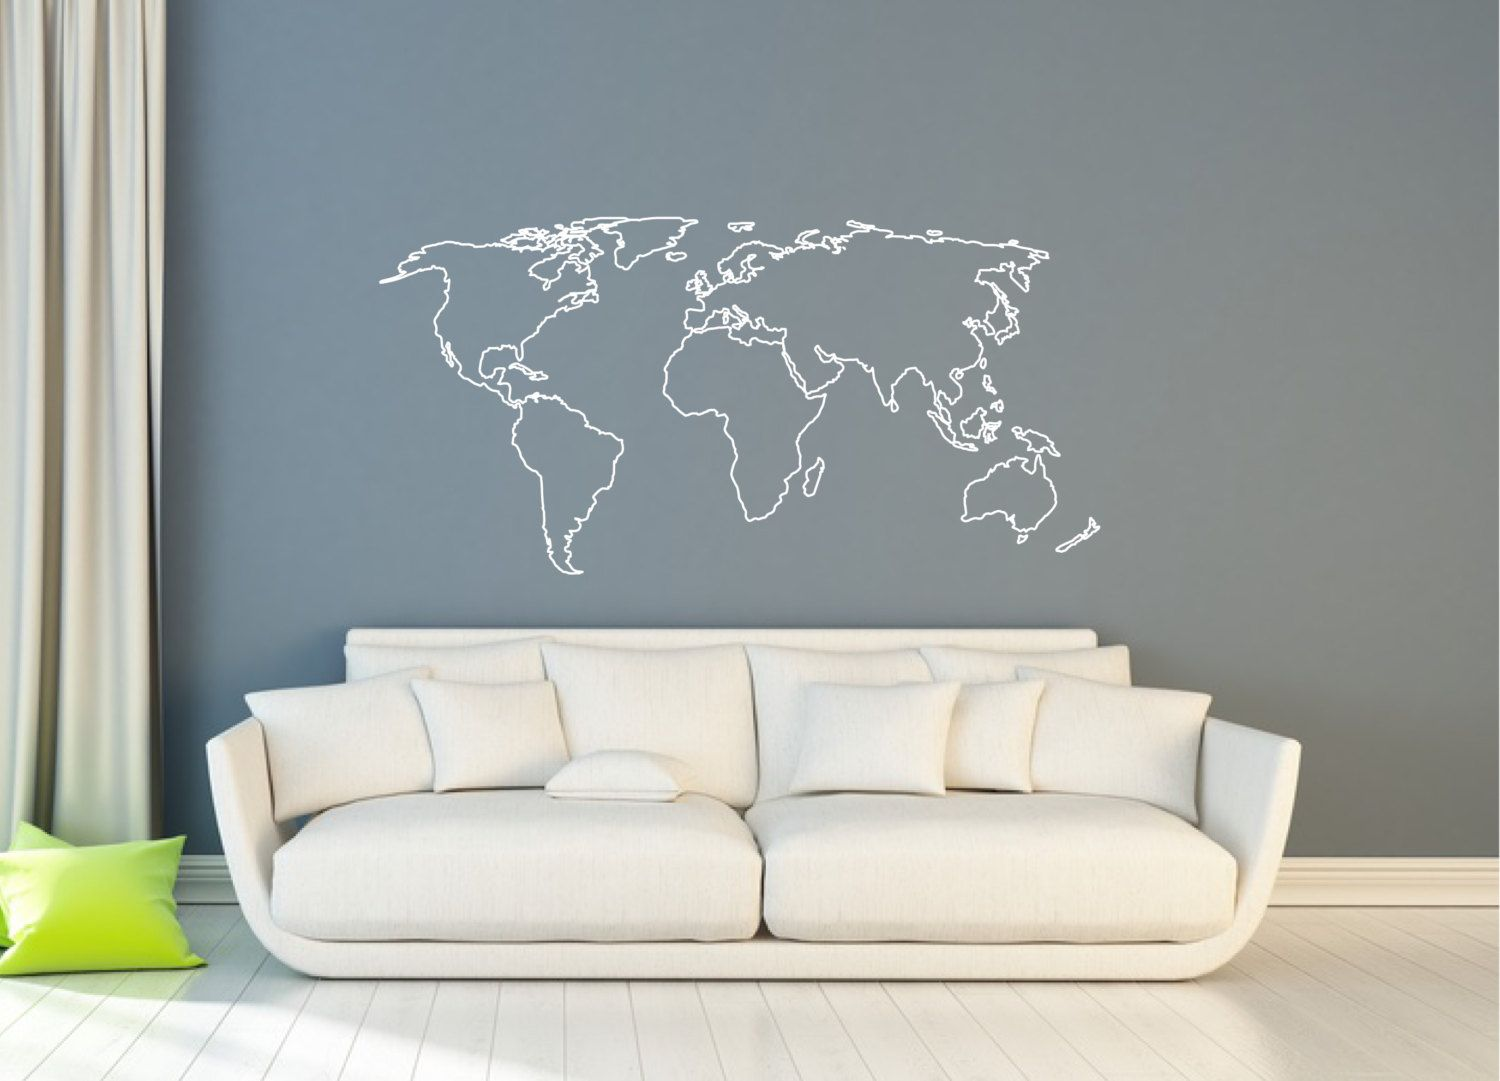 World map wall sticker design map of countries wall decal wall world map wall sticker design map of countries wall decal wall travel decor adventure wall art with location pins white grey black by gumiabroncs